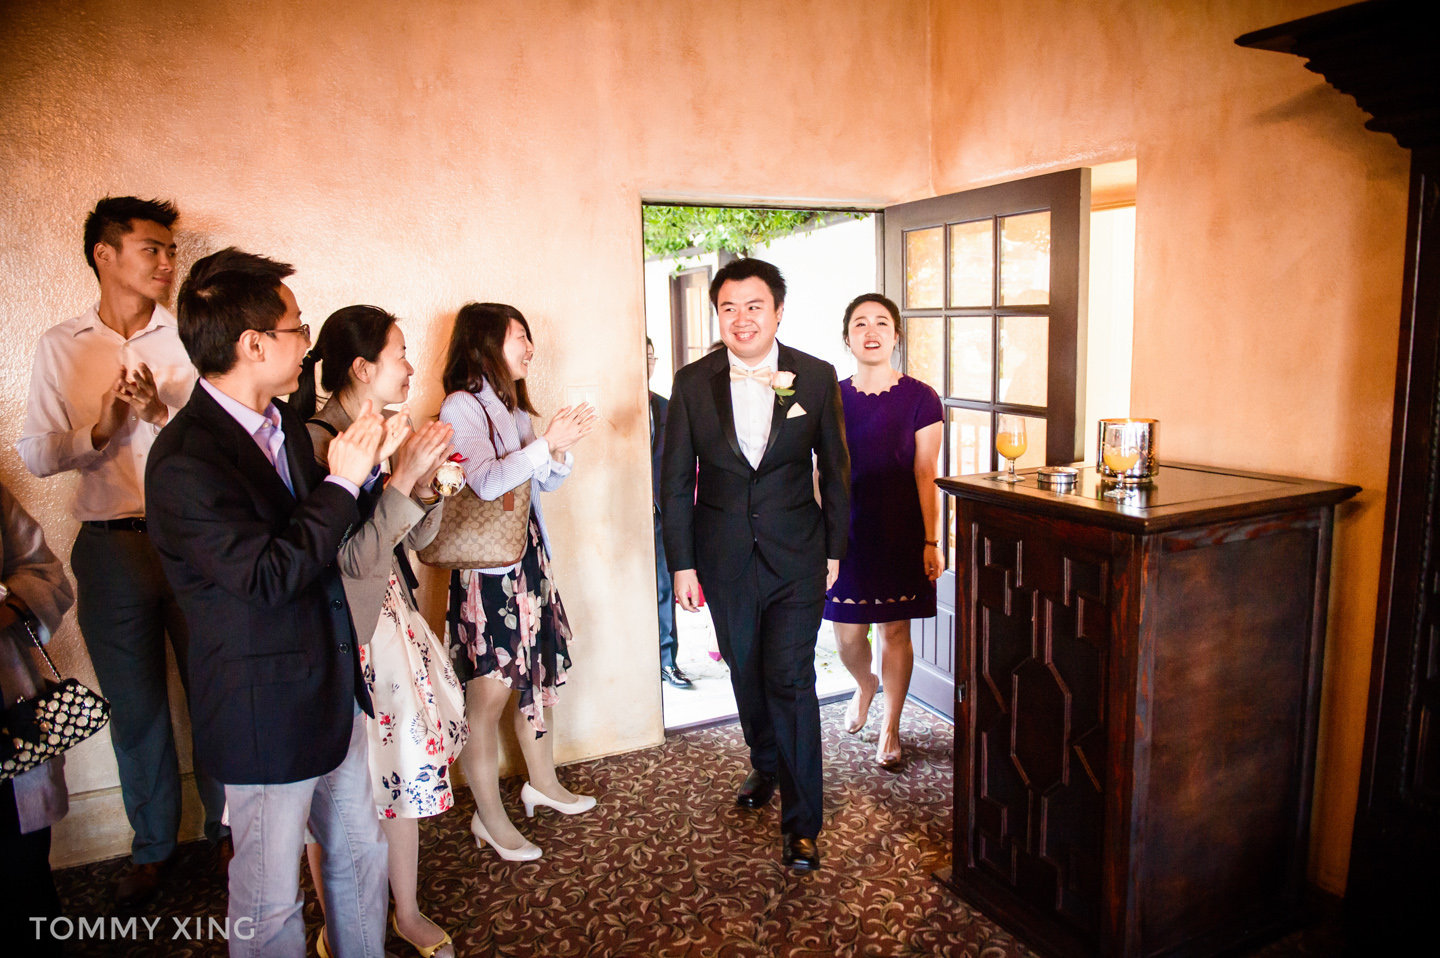 Los Angeles Wedding Photographer 洛杉矶婚礼婚纱摄影师 Tommy Xing-196.JPG